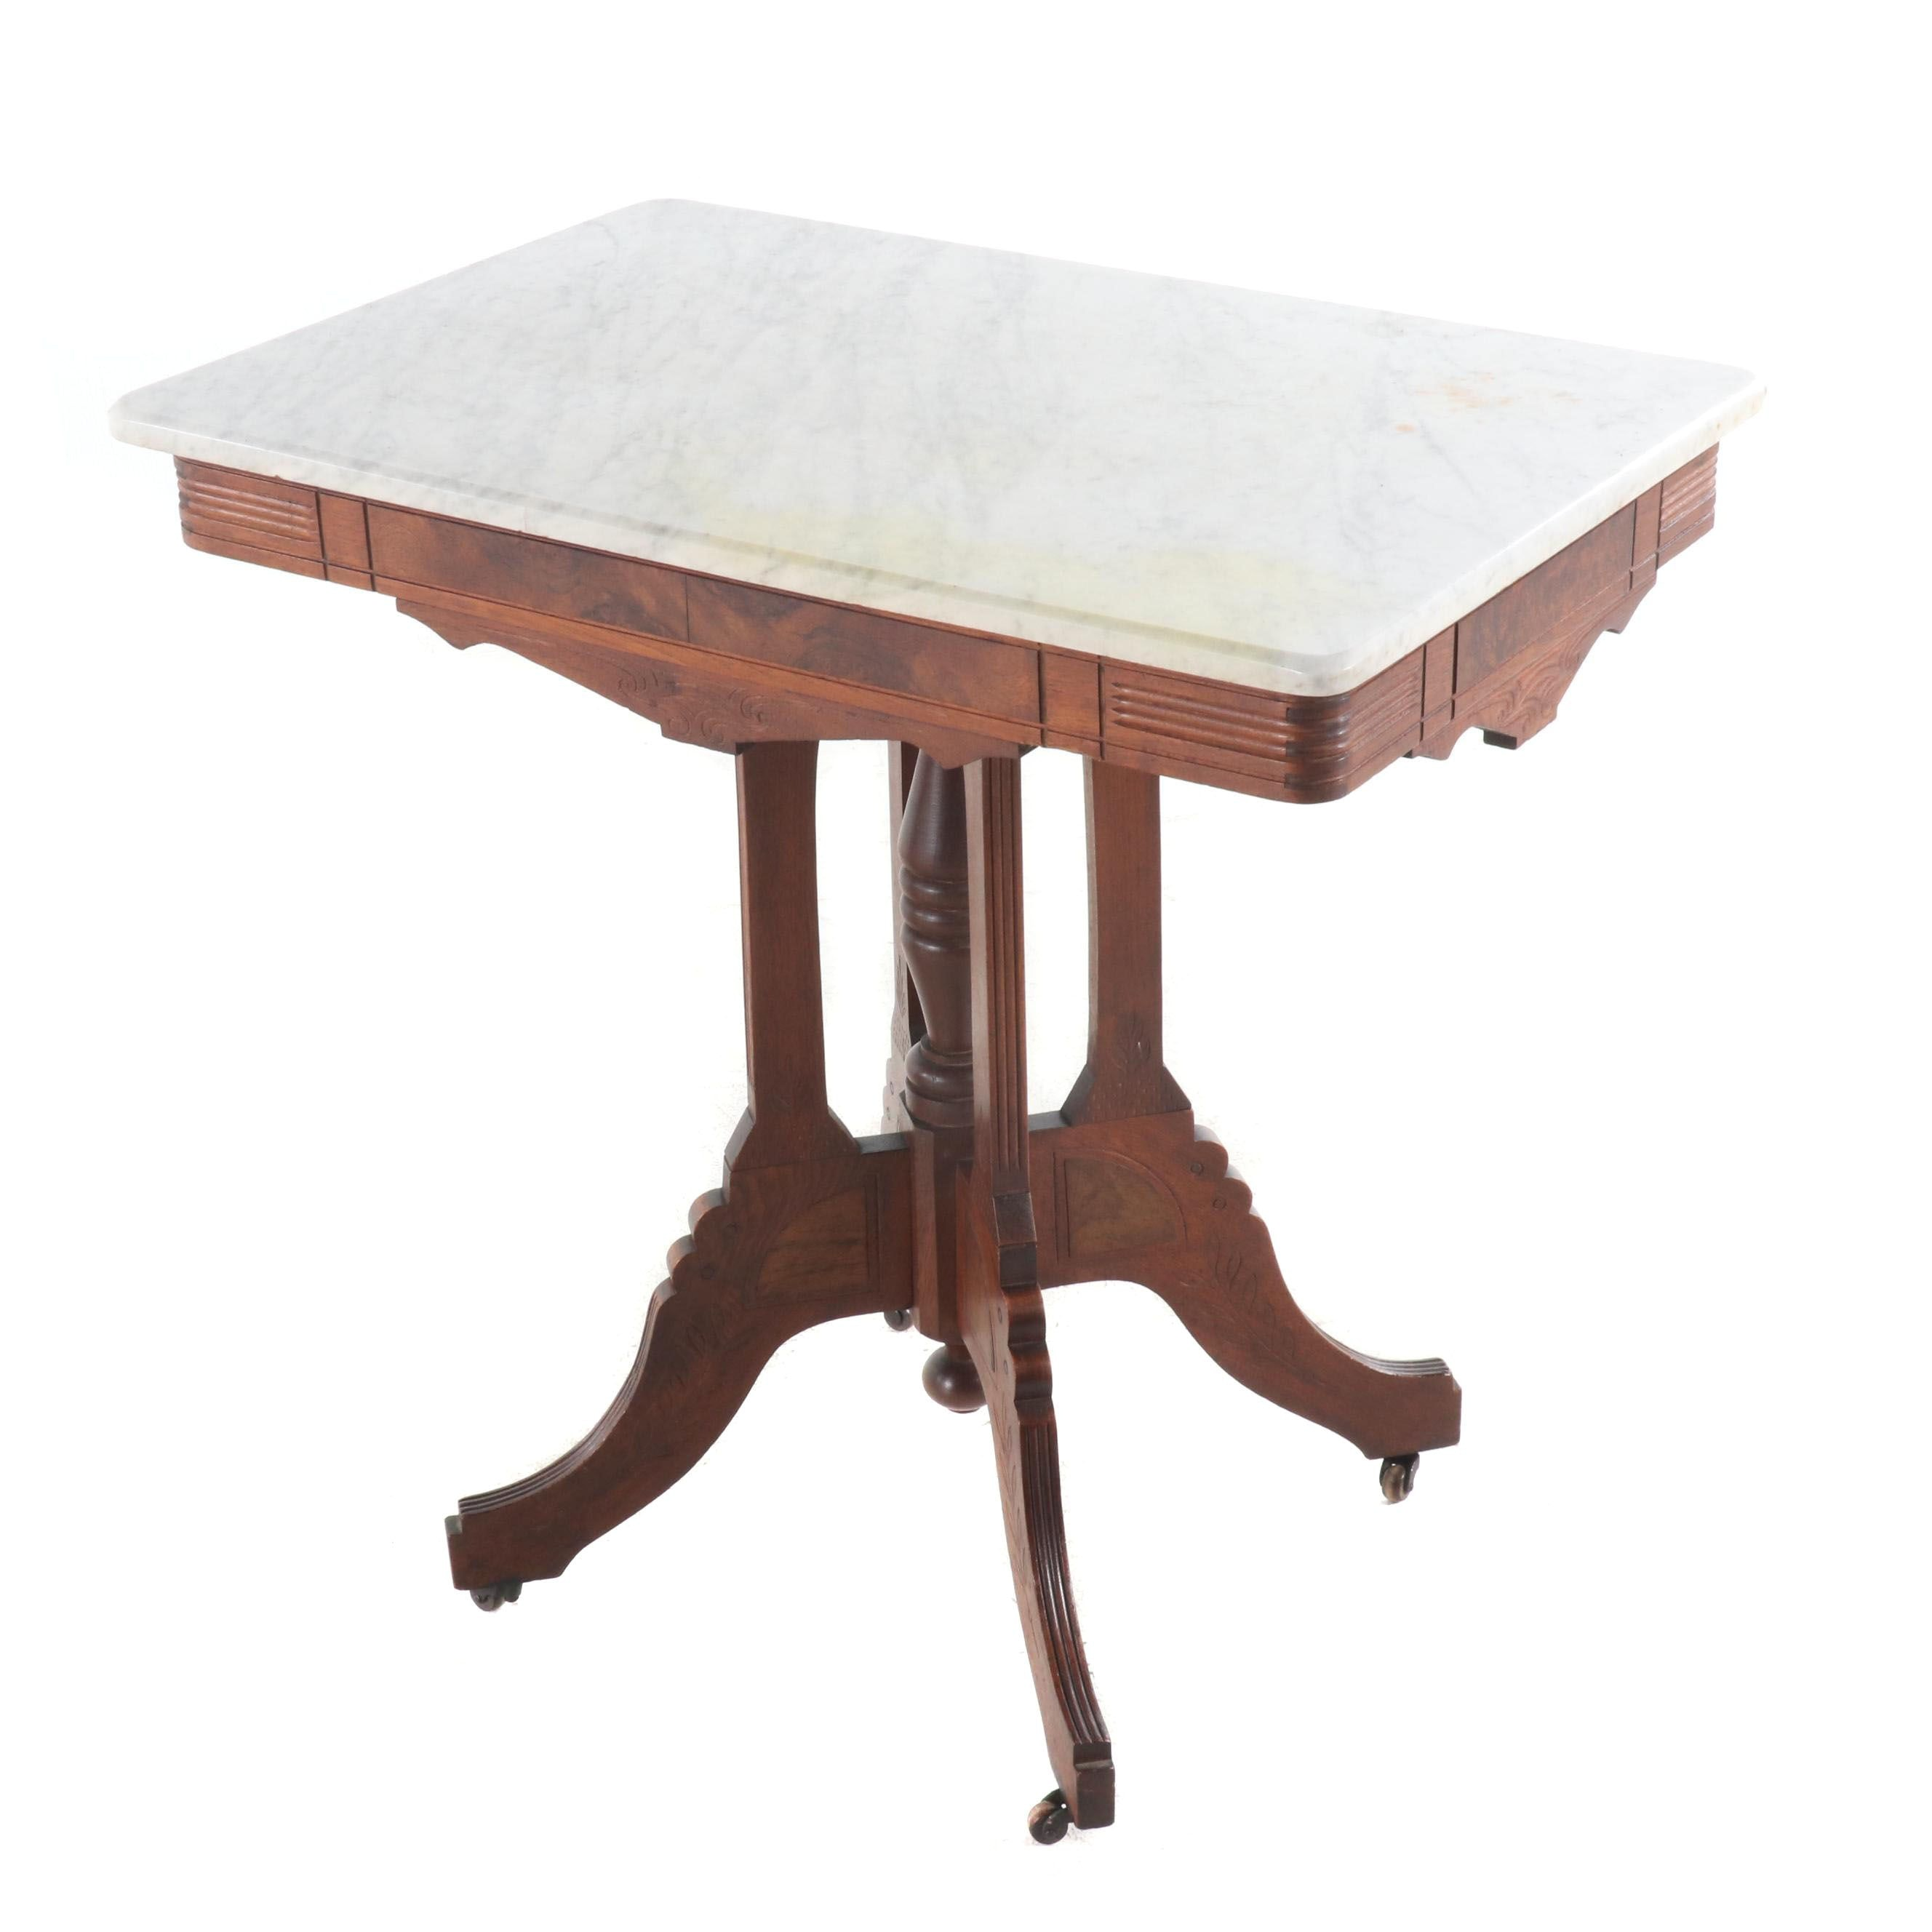 Eastlake Style Marble Top Walnut Table, Late 19th Century